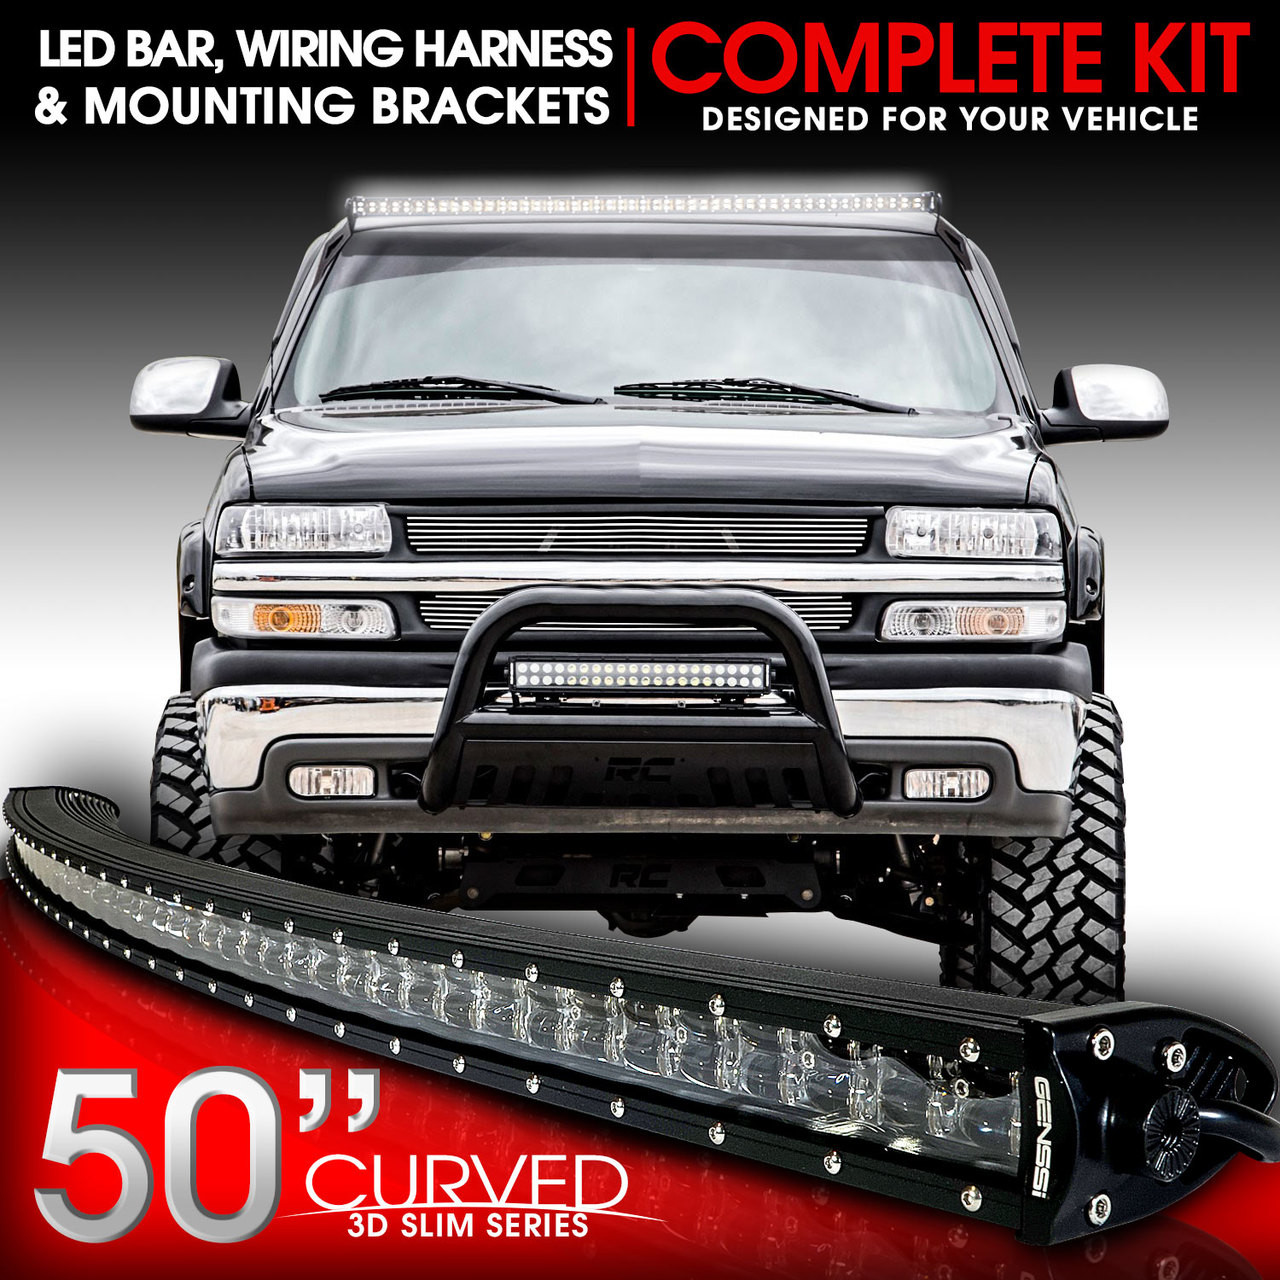 medium resolution of led light bar curved 288w 50 inches bracket wiring harness kit for 2006 silverado light wiring harness